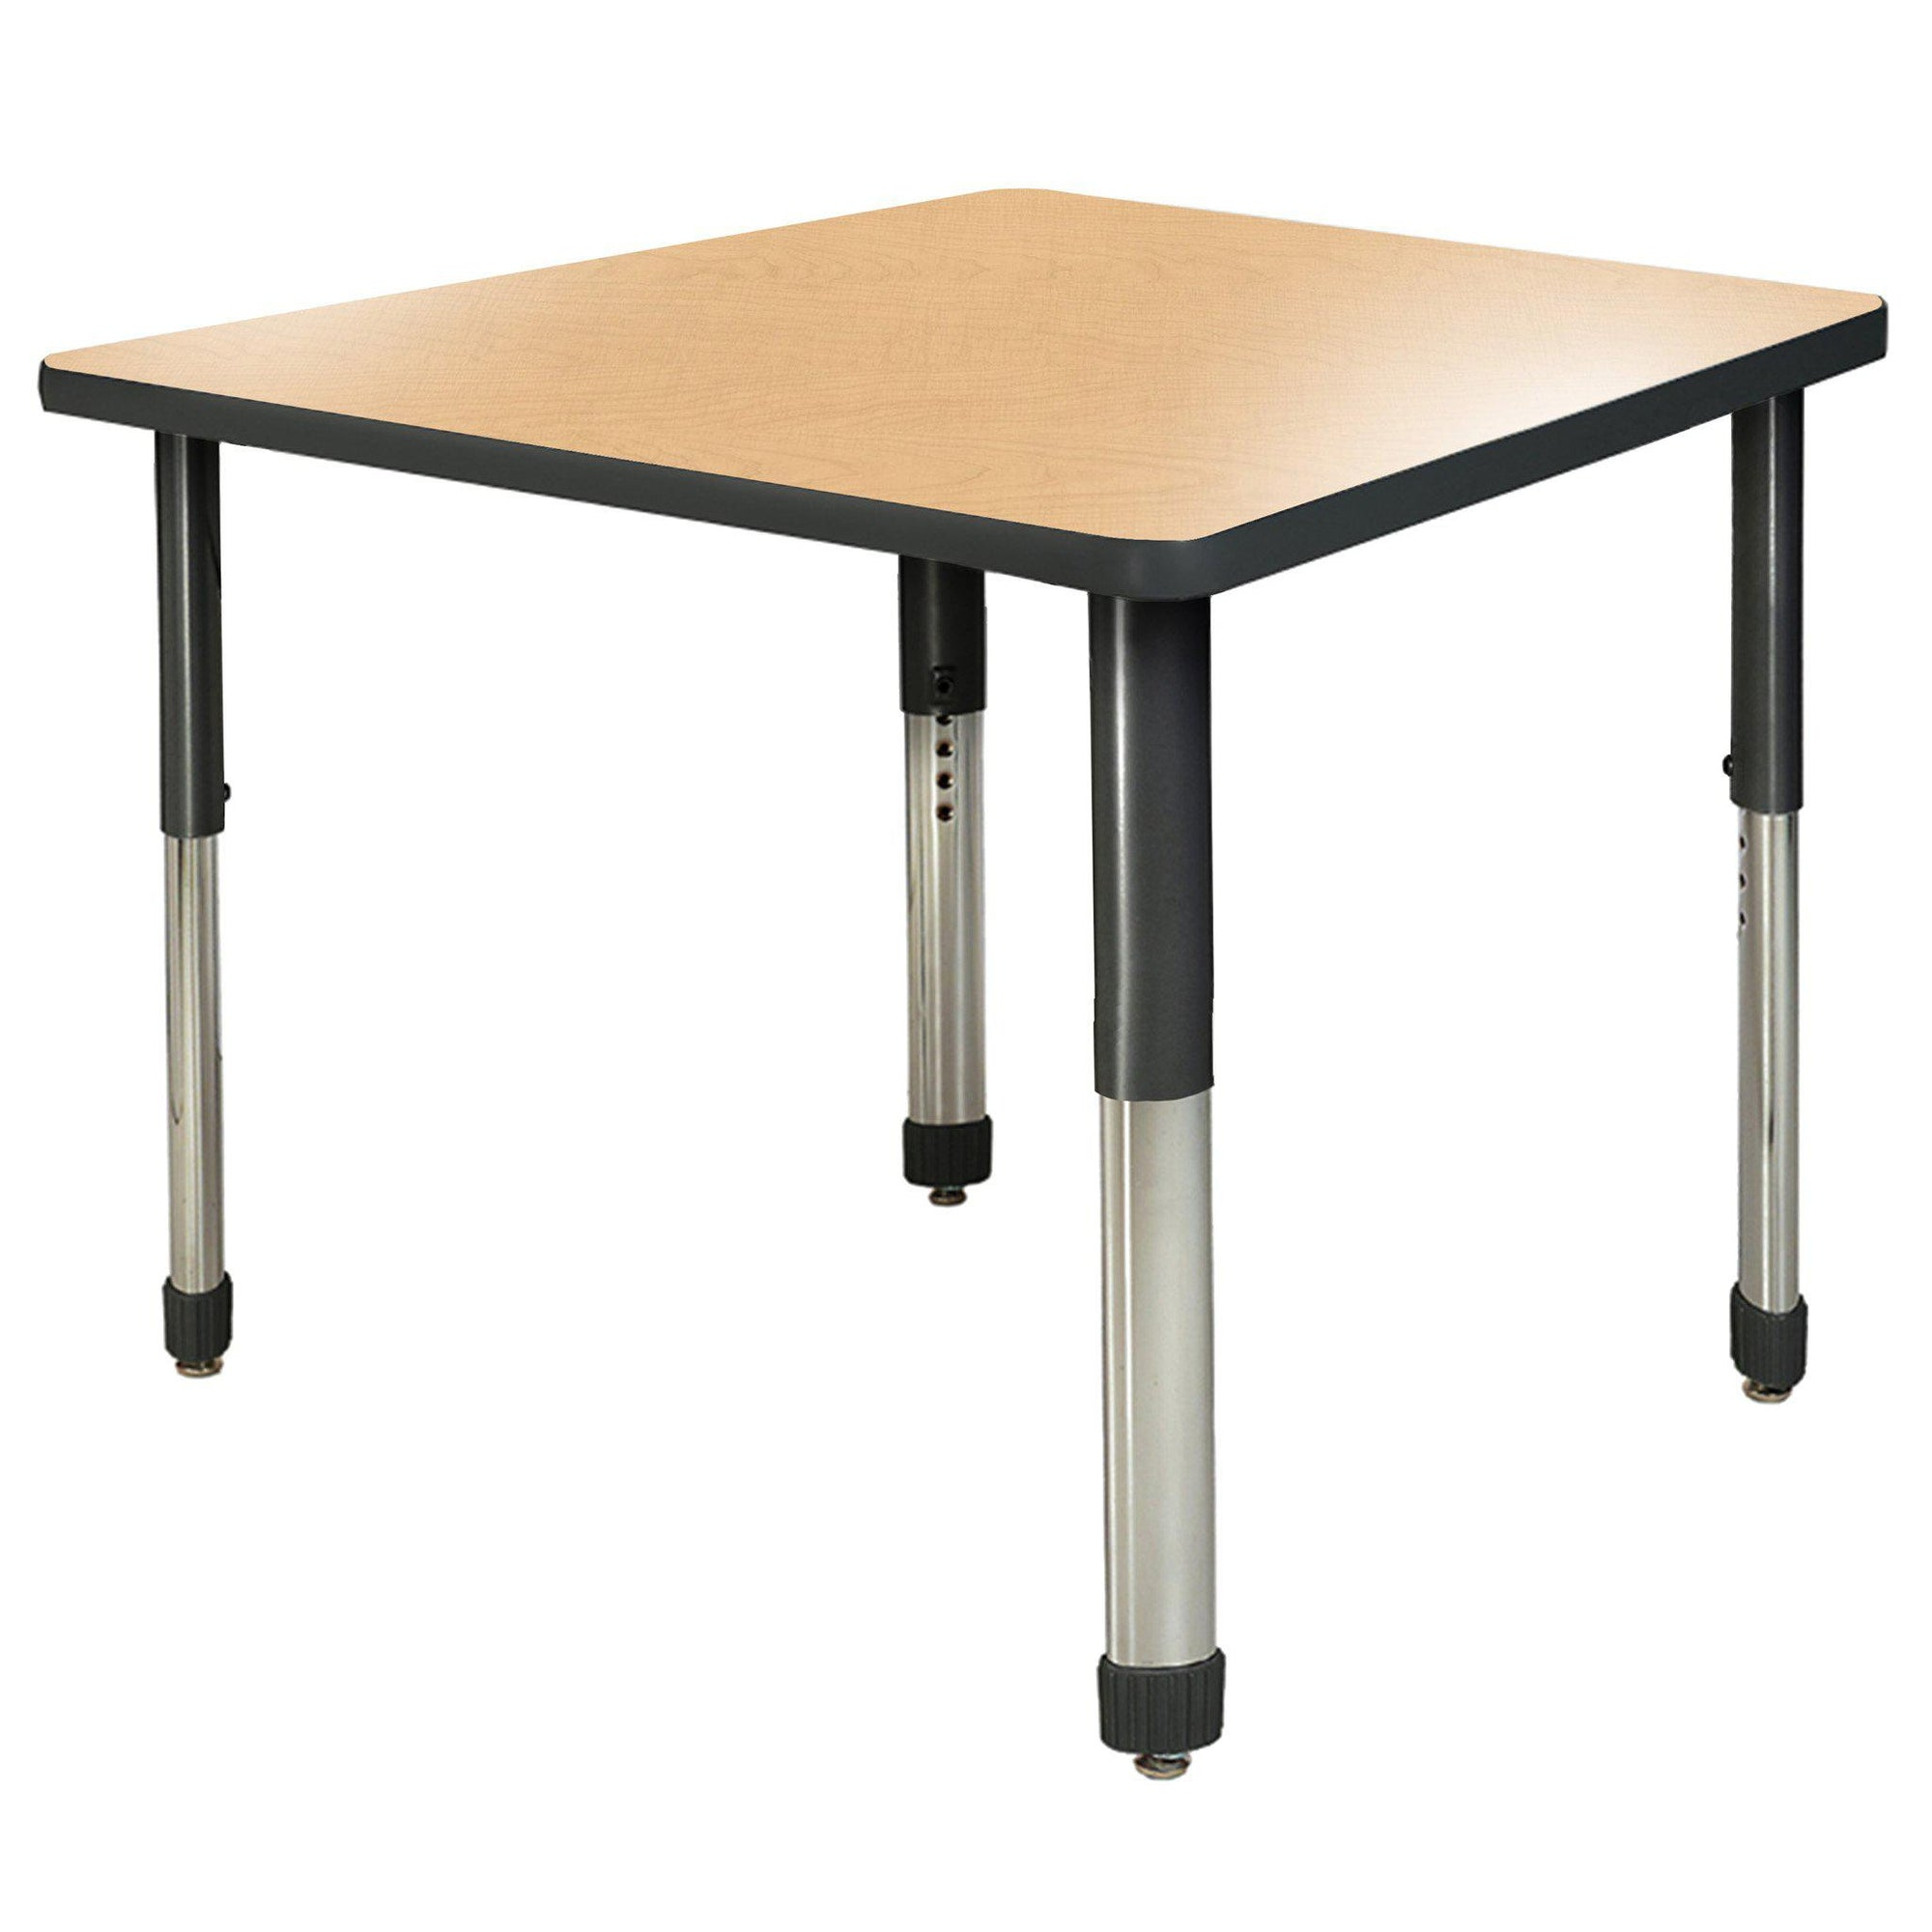 "Aero Activity Table, 48"" x 48"" Square, Oval Adjustable Height Legs"